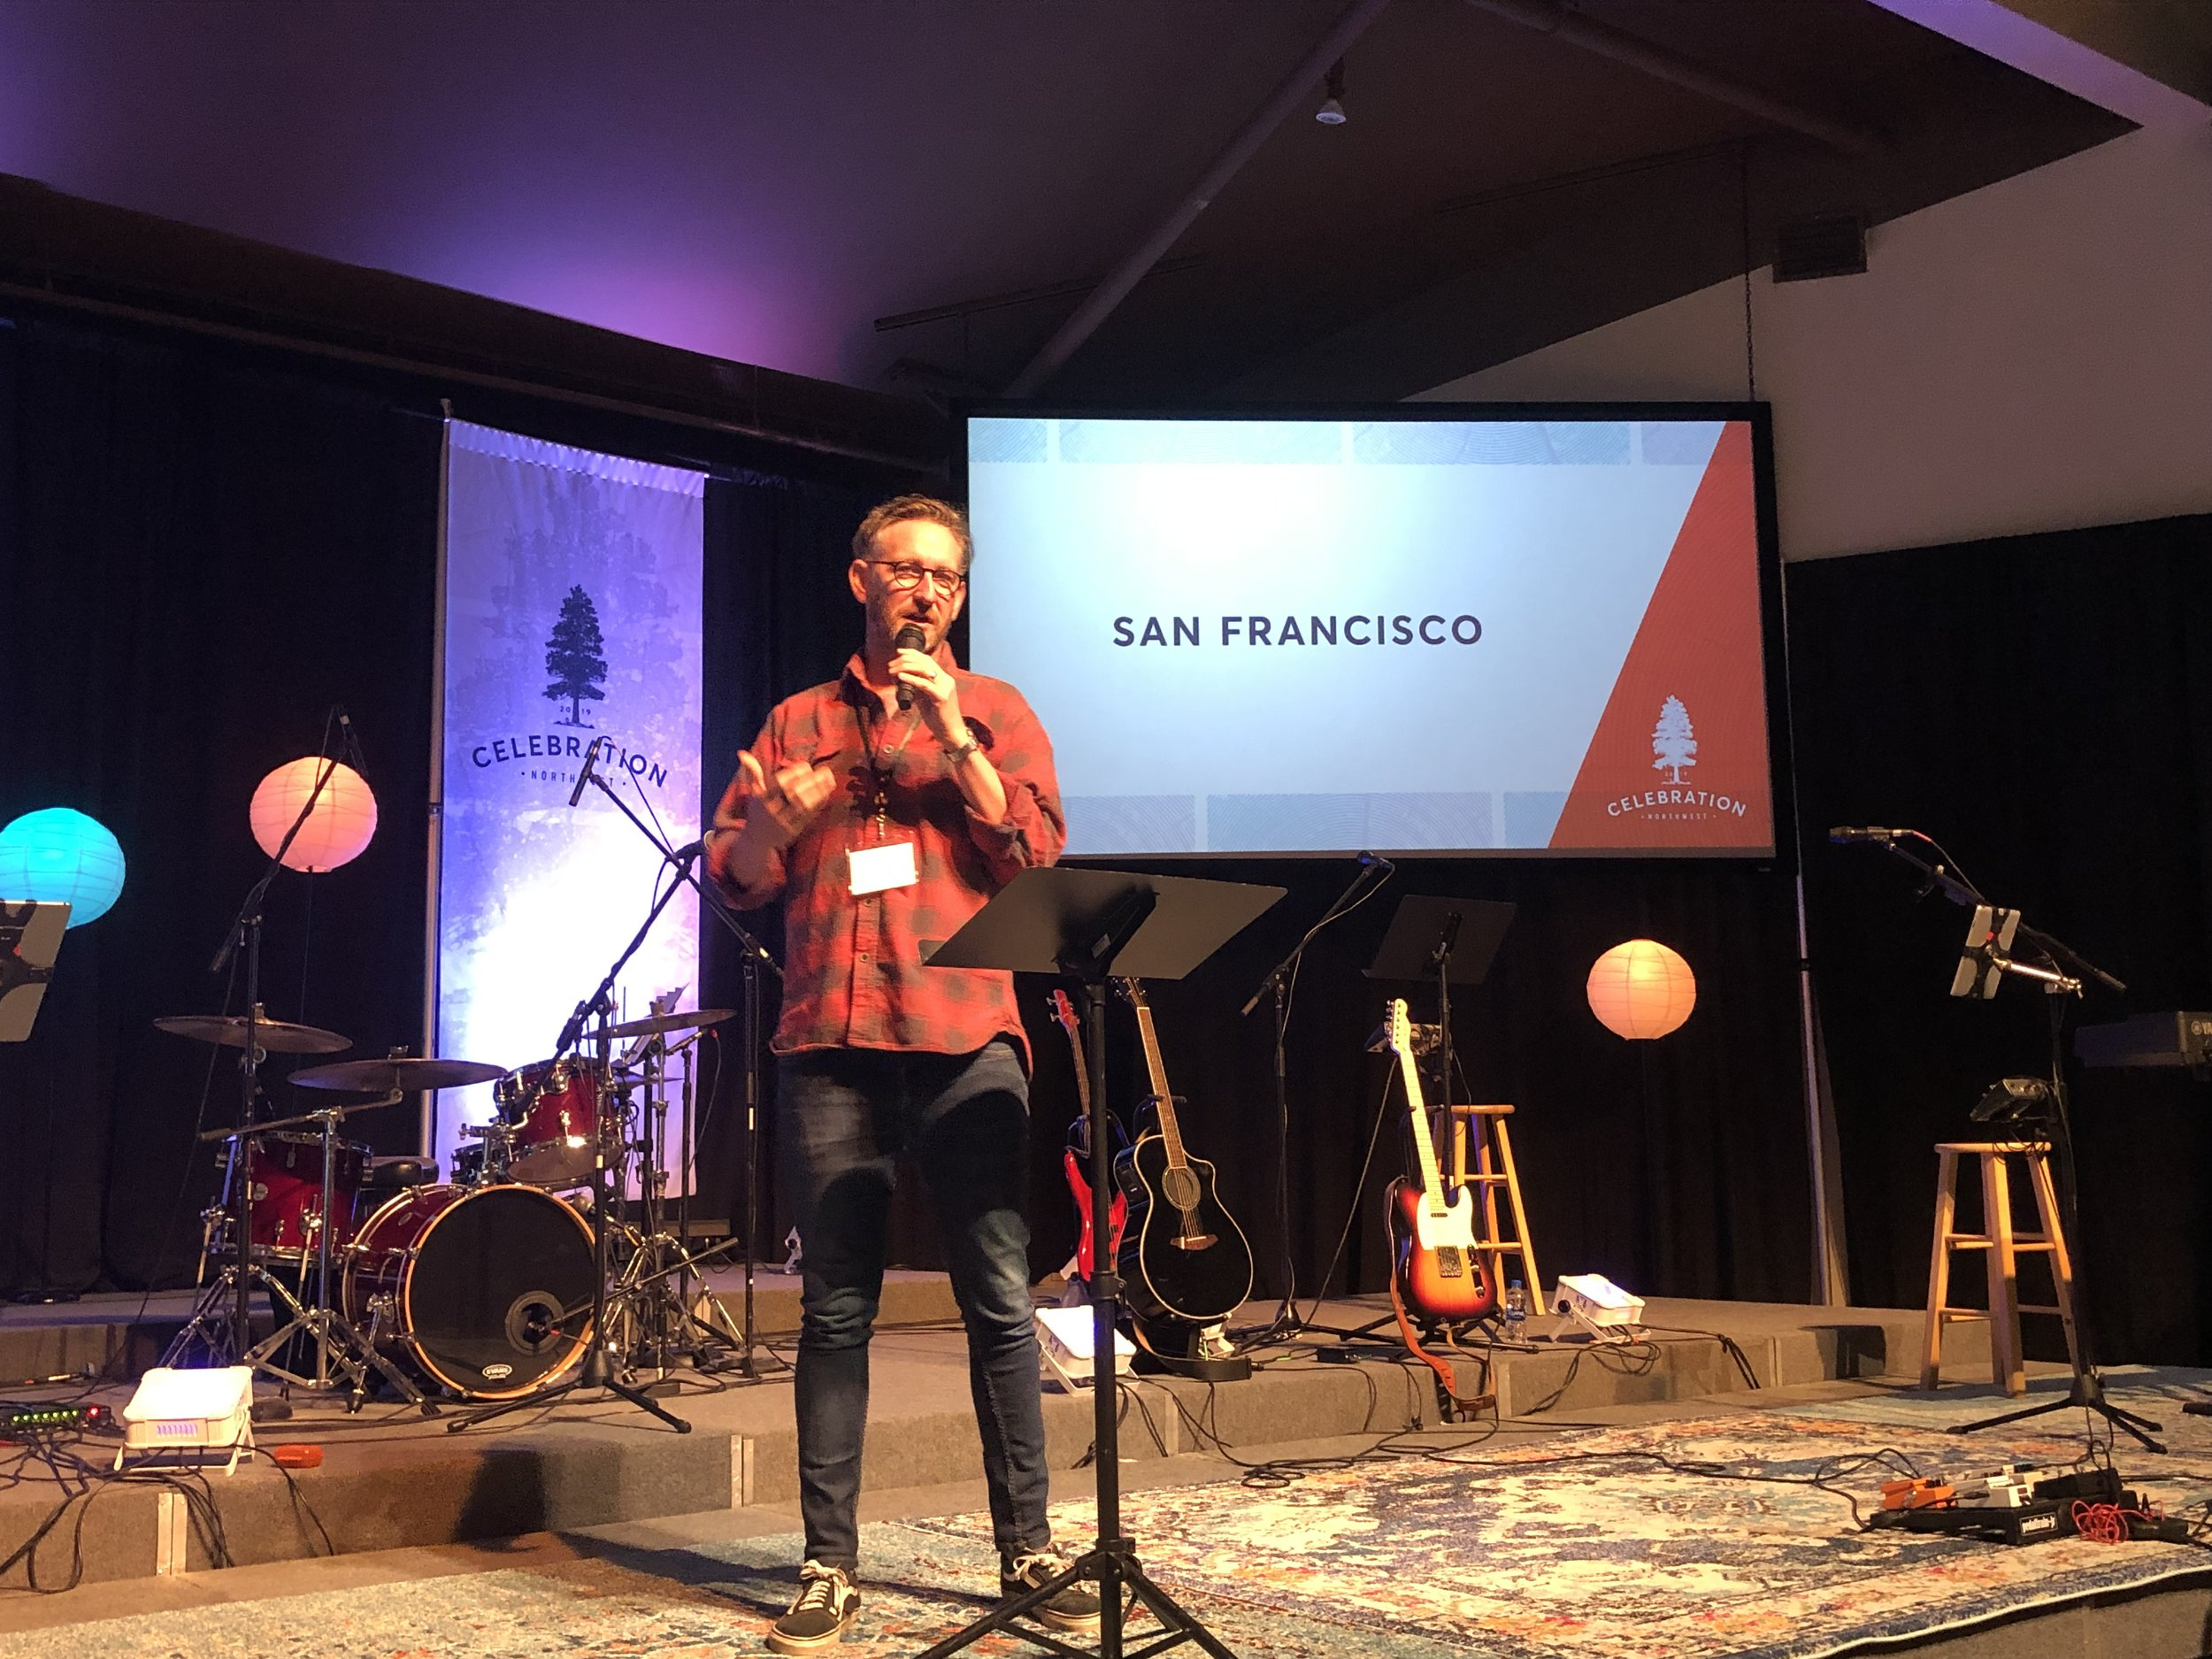 Tom Shaw shares the story and vision of Sanctuary Church SF